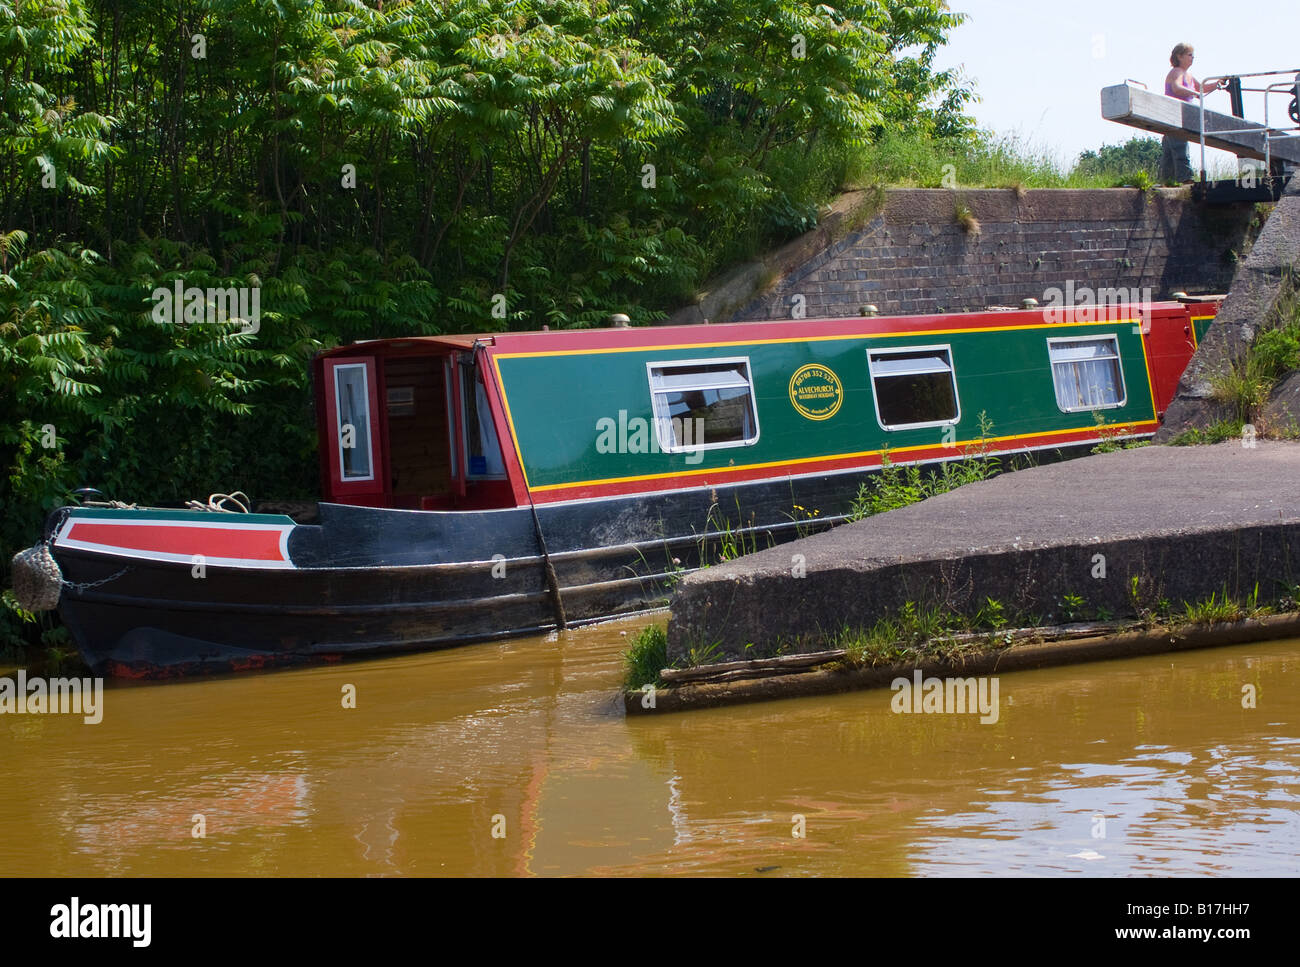 A Narrow Boat Leaving a Lock on the Trent and Mersey Canal near Rode Heath Cheshire England United Kingdom - Stock Image